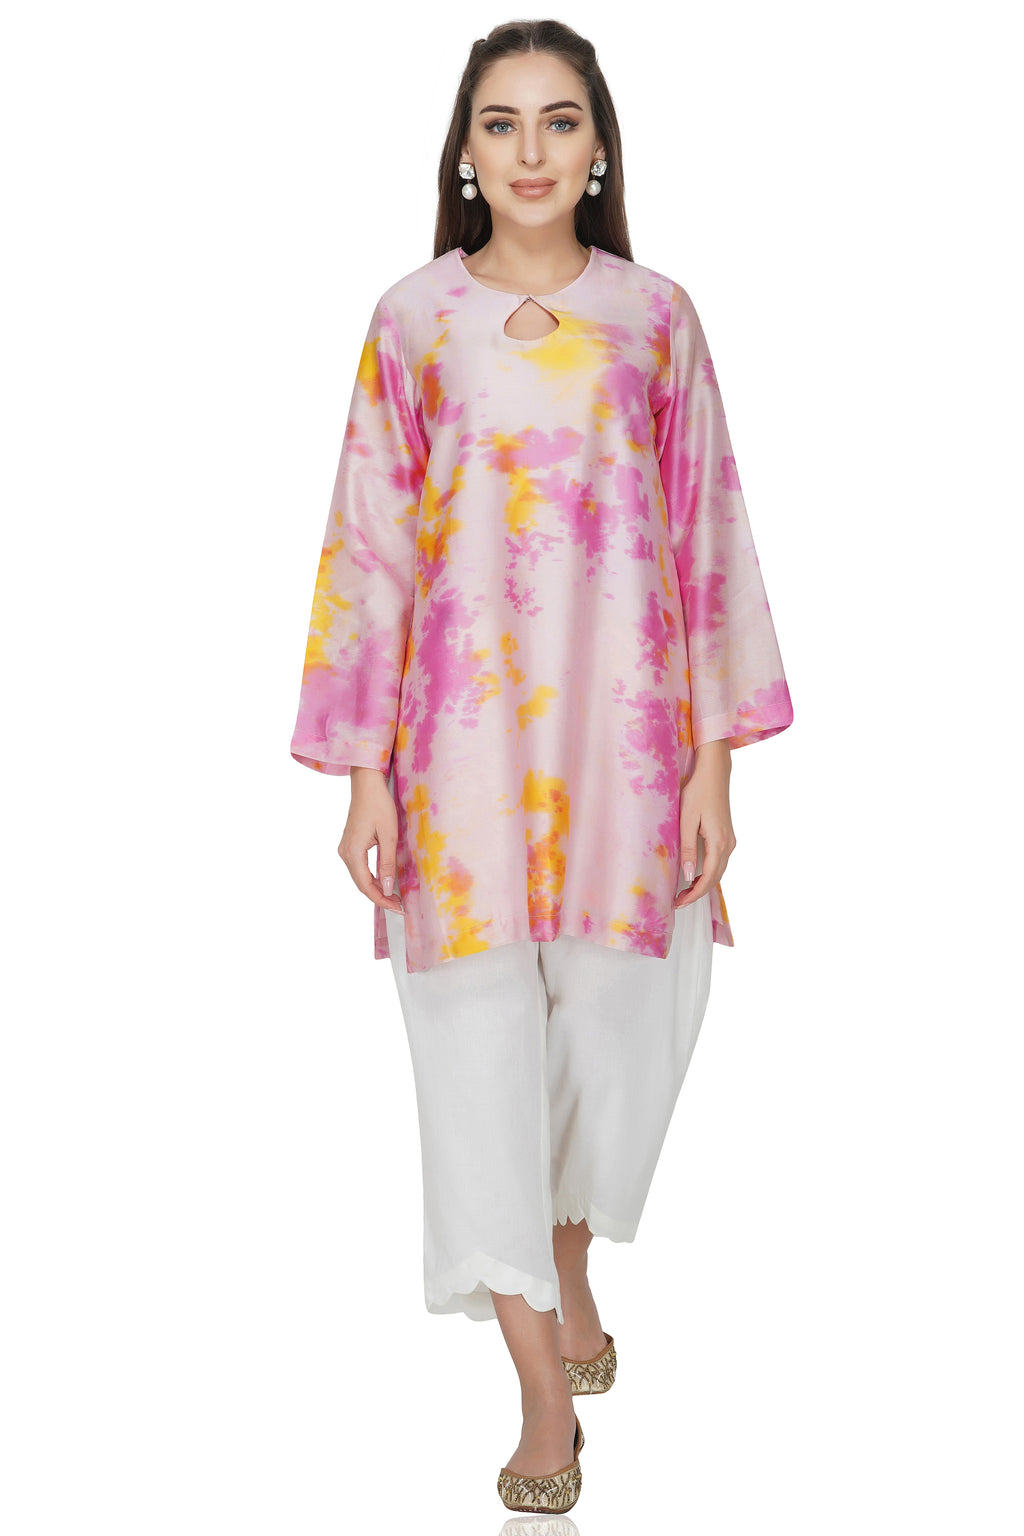 Pink Tie and Dye Chanderi Silk Kurta with White Cotton Pants - Set of 2